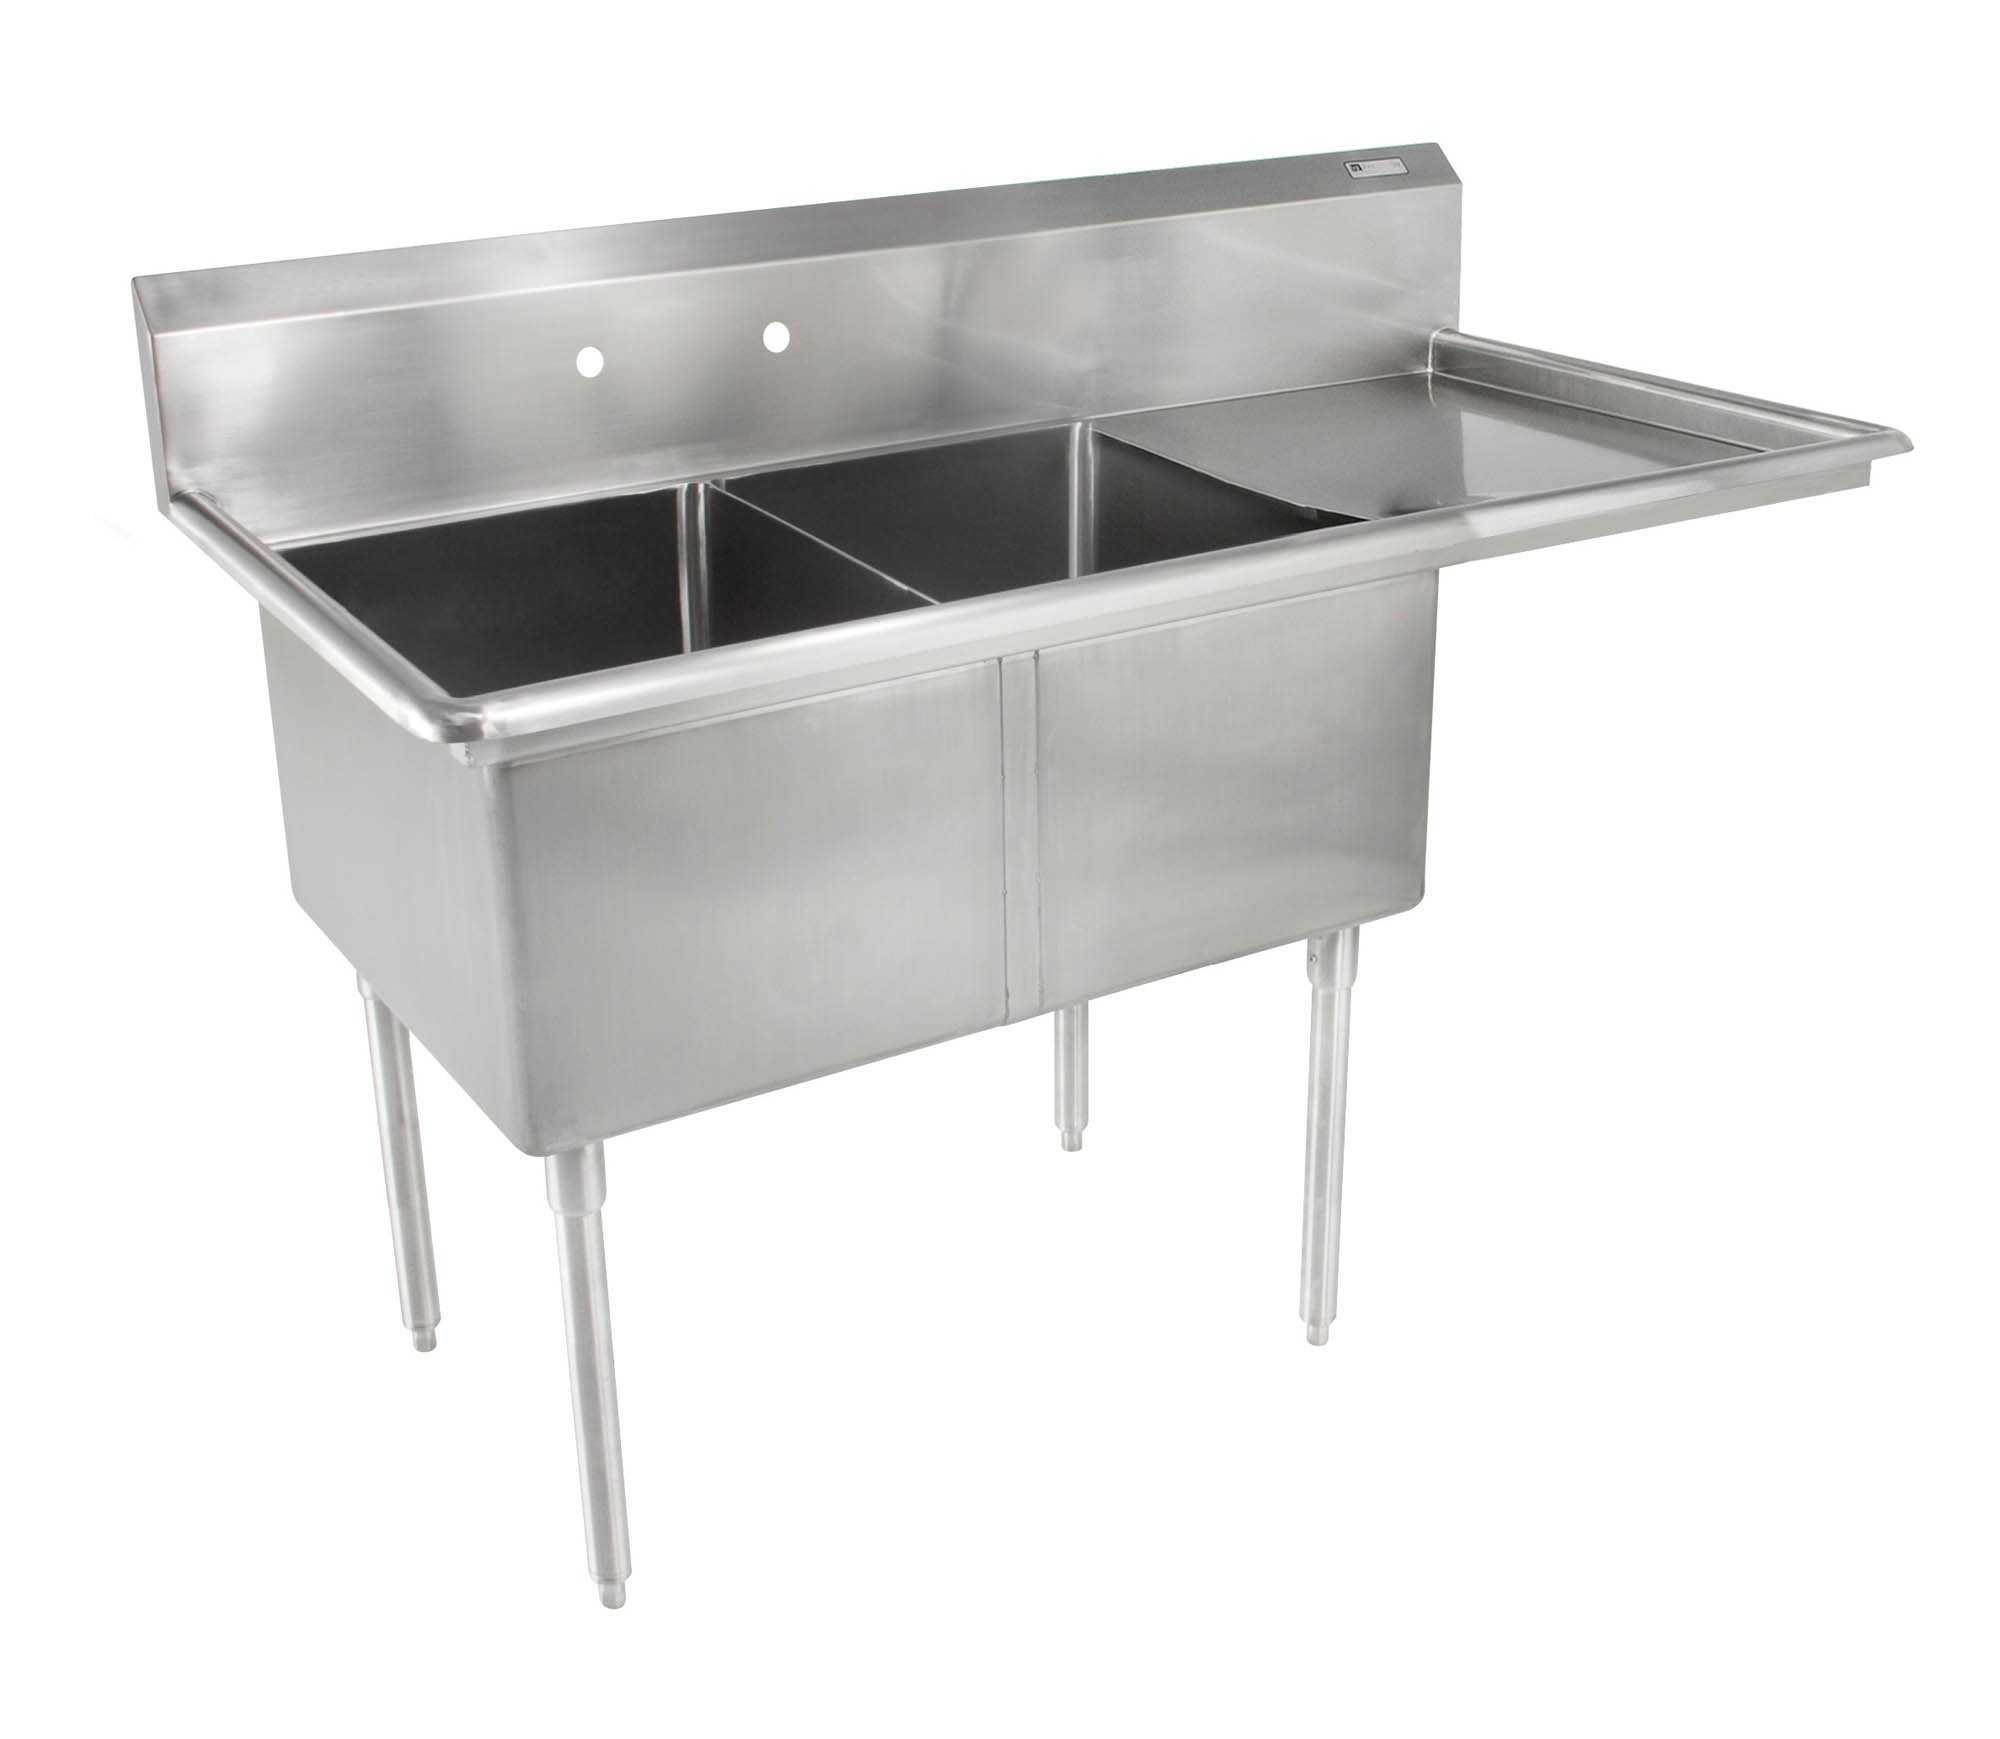 John Boos E Series Stainless Steel Sink, 12'' Deep Bowl, 2 Compartment, 18'' Right Hand Side Drainboard, 52-1/2'' Length x 25-1/2'' Width by John Boos (Image #1)